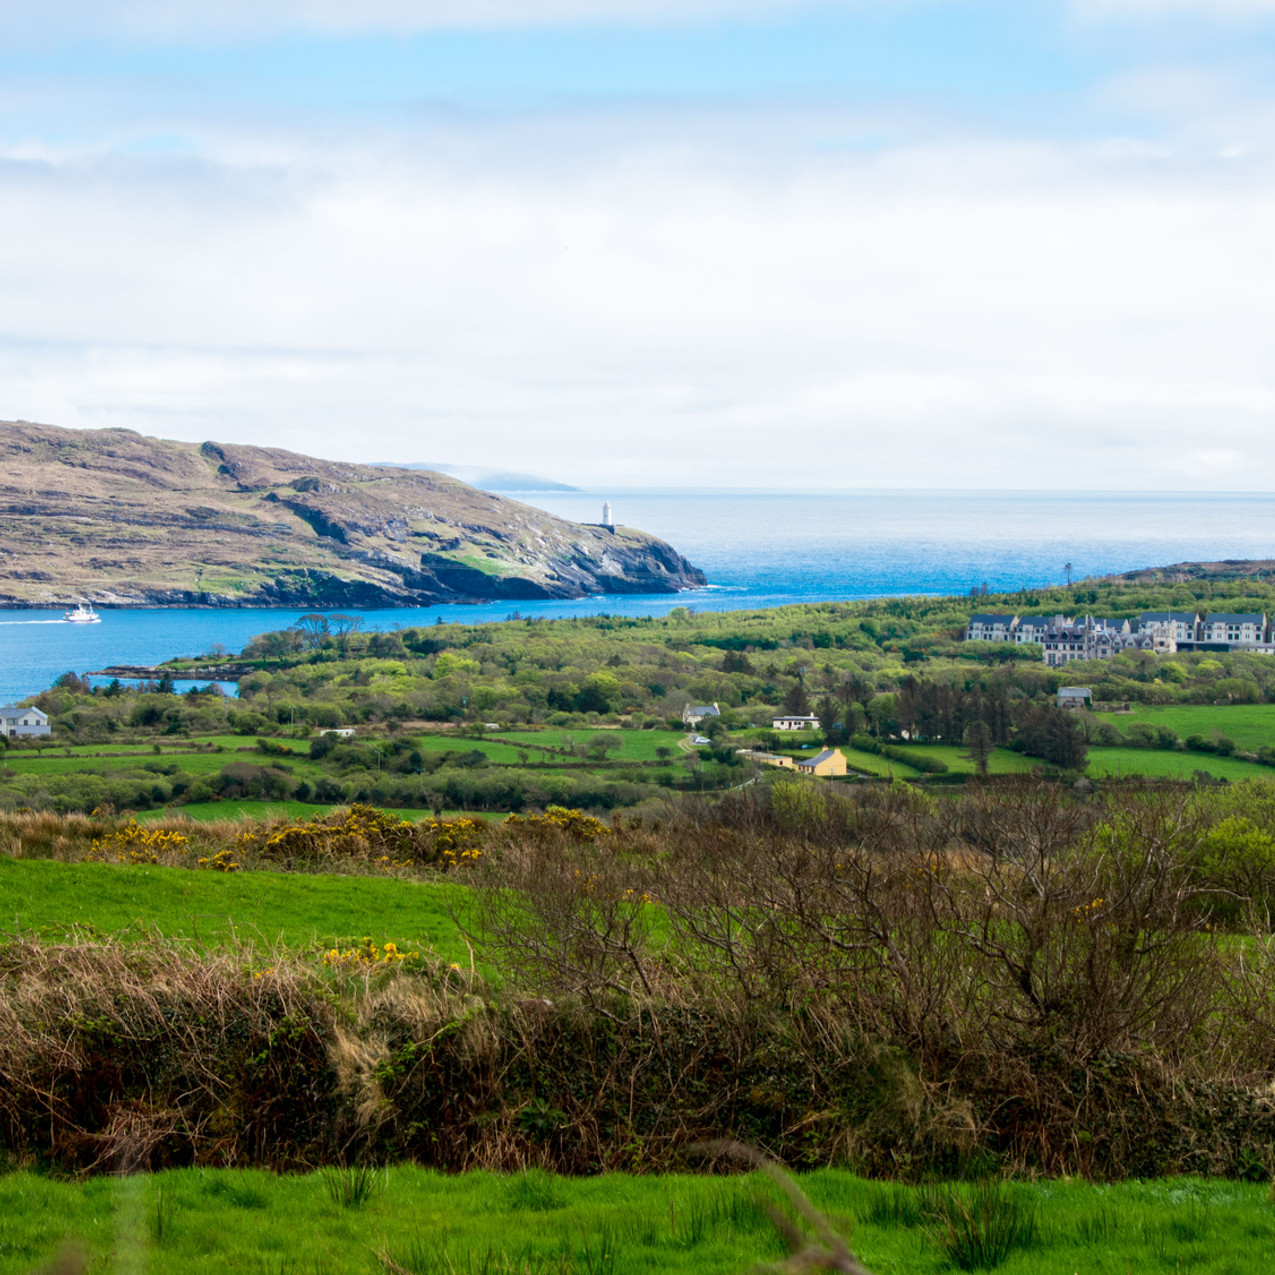 Across the way you can see the Bere Island lighthouse. As the sun peeked out, it lit up the sea with bright blues.